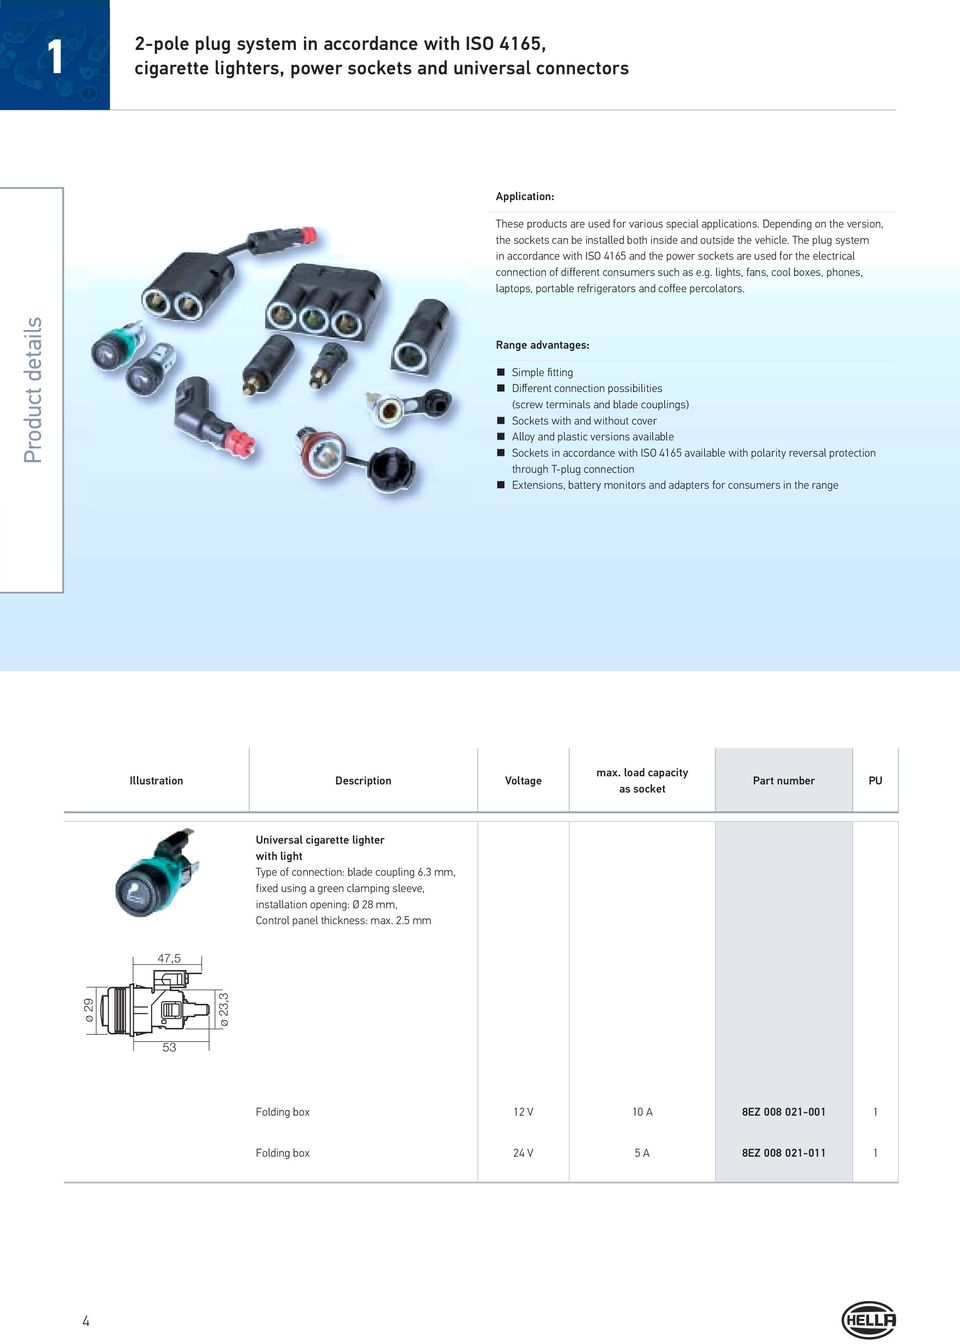 Electrical Plug Type Connections Pdf Easy Wire Power 21mm Dc For Cctv Cameras With Screw Terminals The System In Accordance Iso 4165 And Sockets Are Used